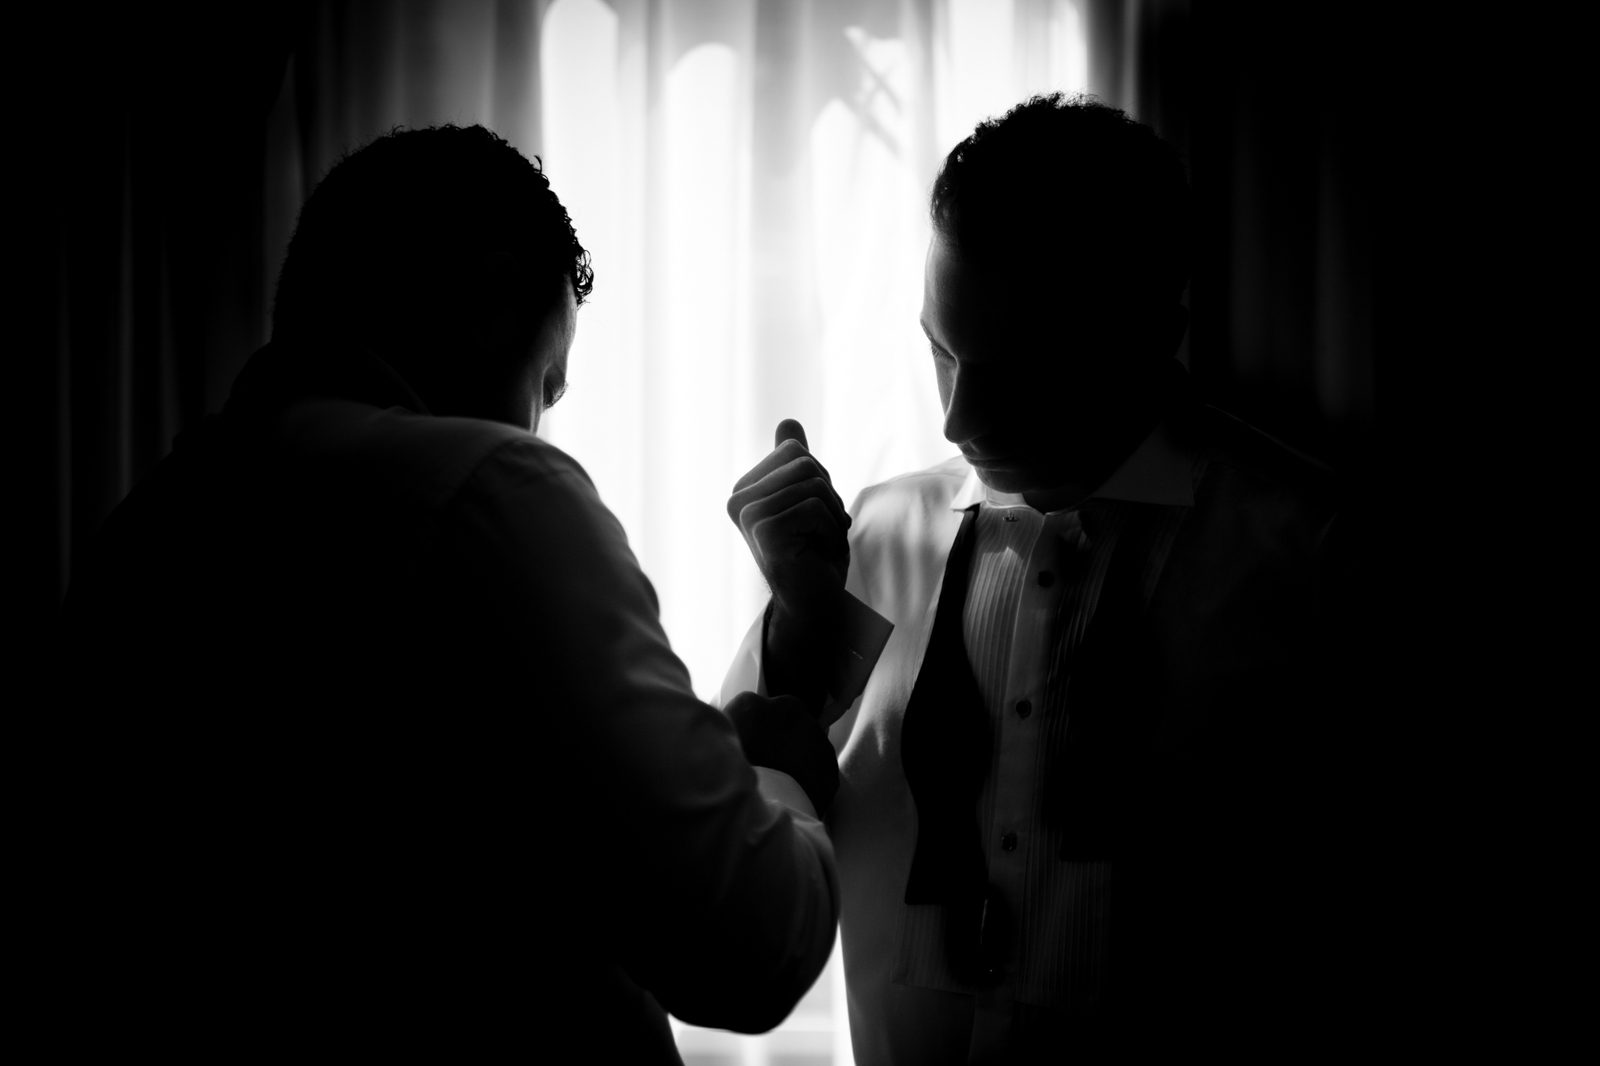 Groom and best man getting ready for wedding